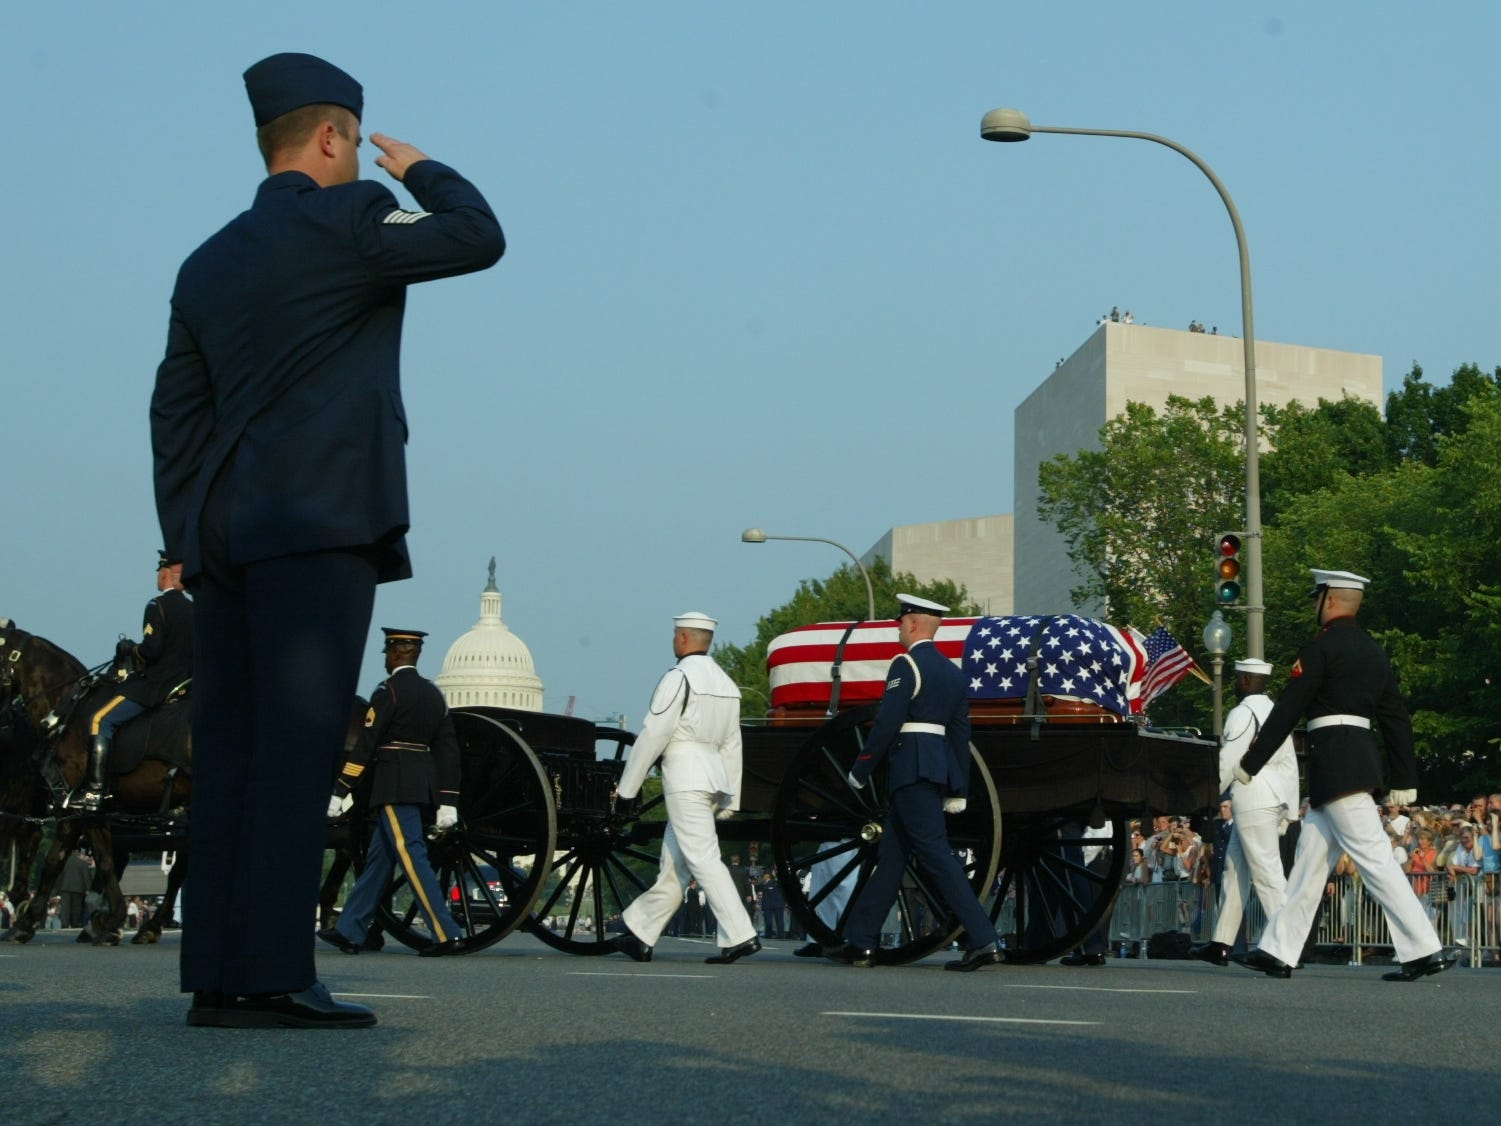 The remains of Former President Ronald Reagan proceed up Constitution Ave. on the way to the U.S. Capitol in Washington, June 9, 2004.